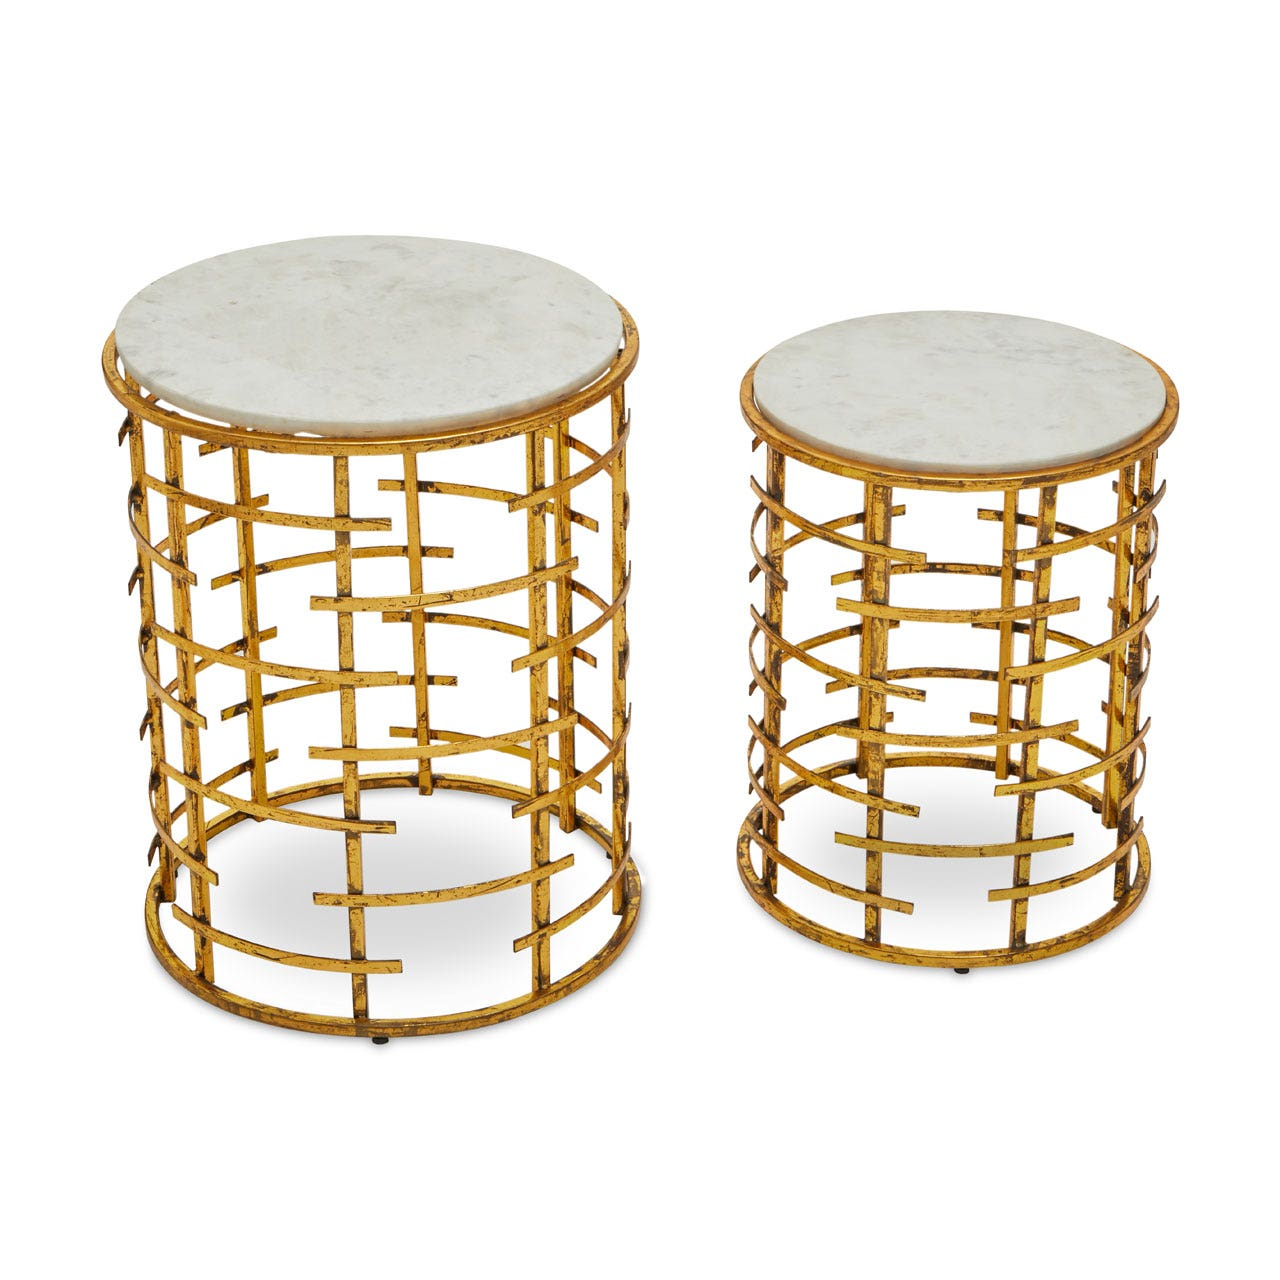 Occasional Tables UK